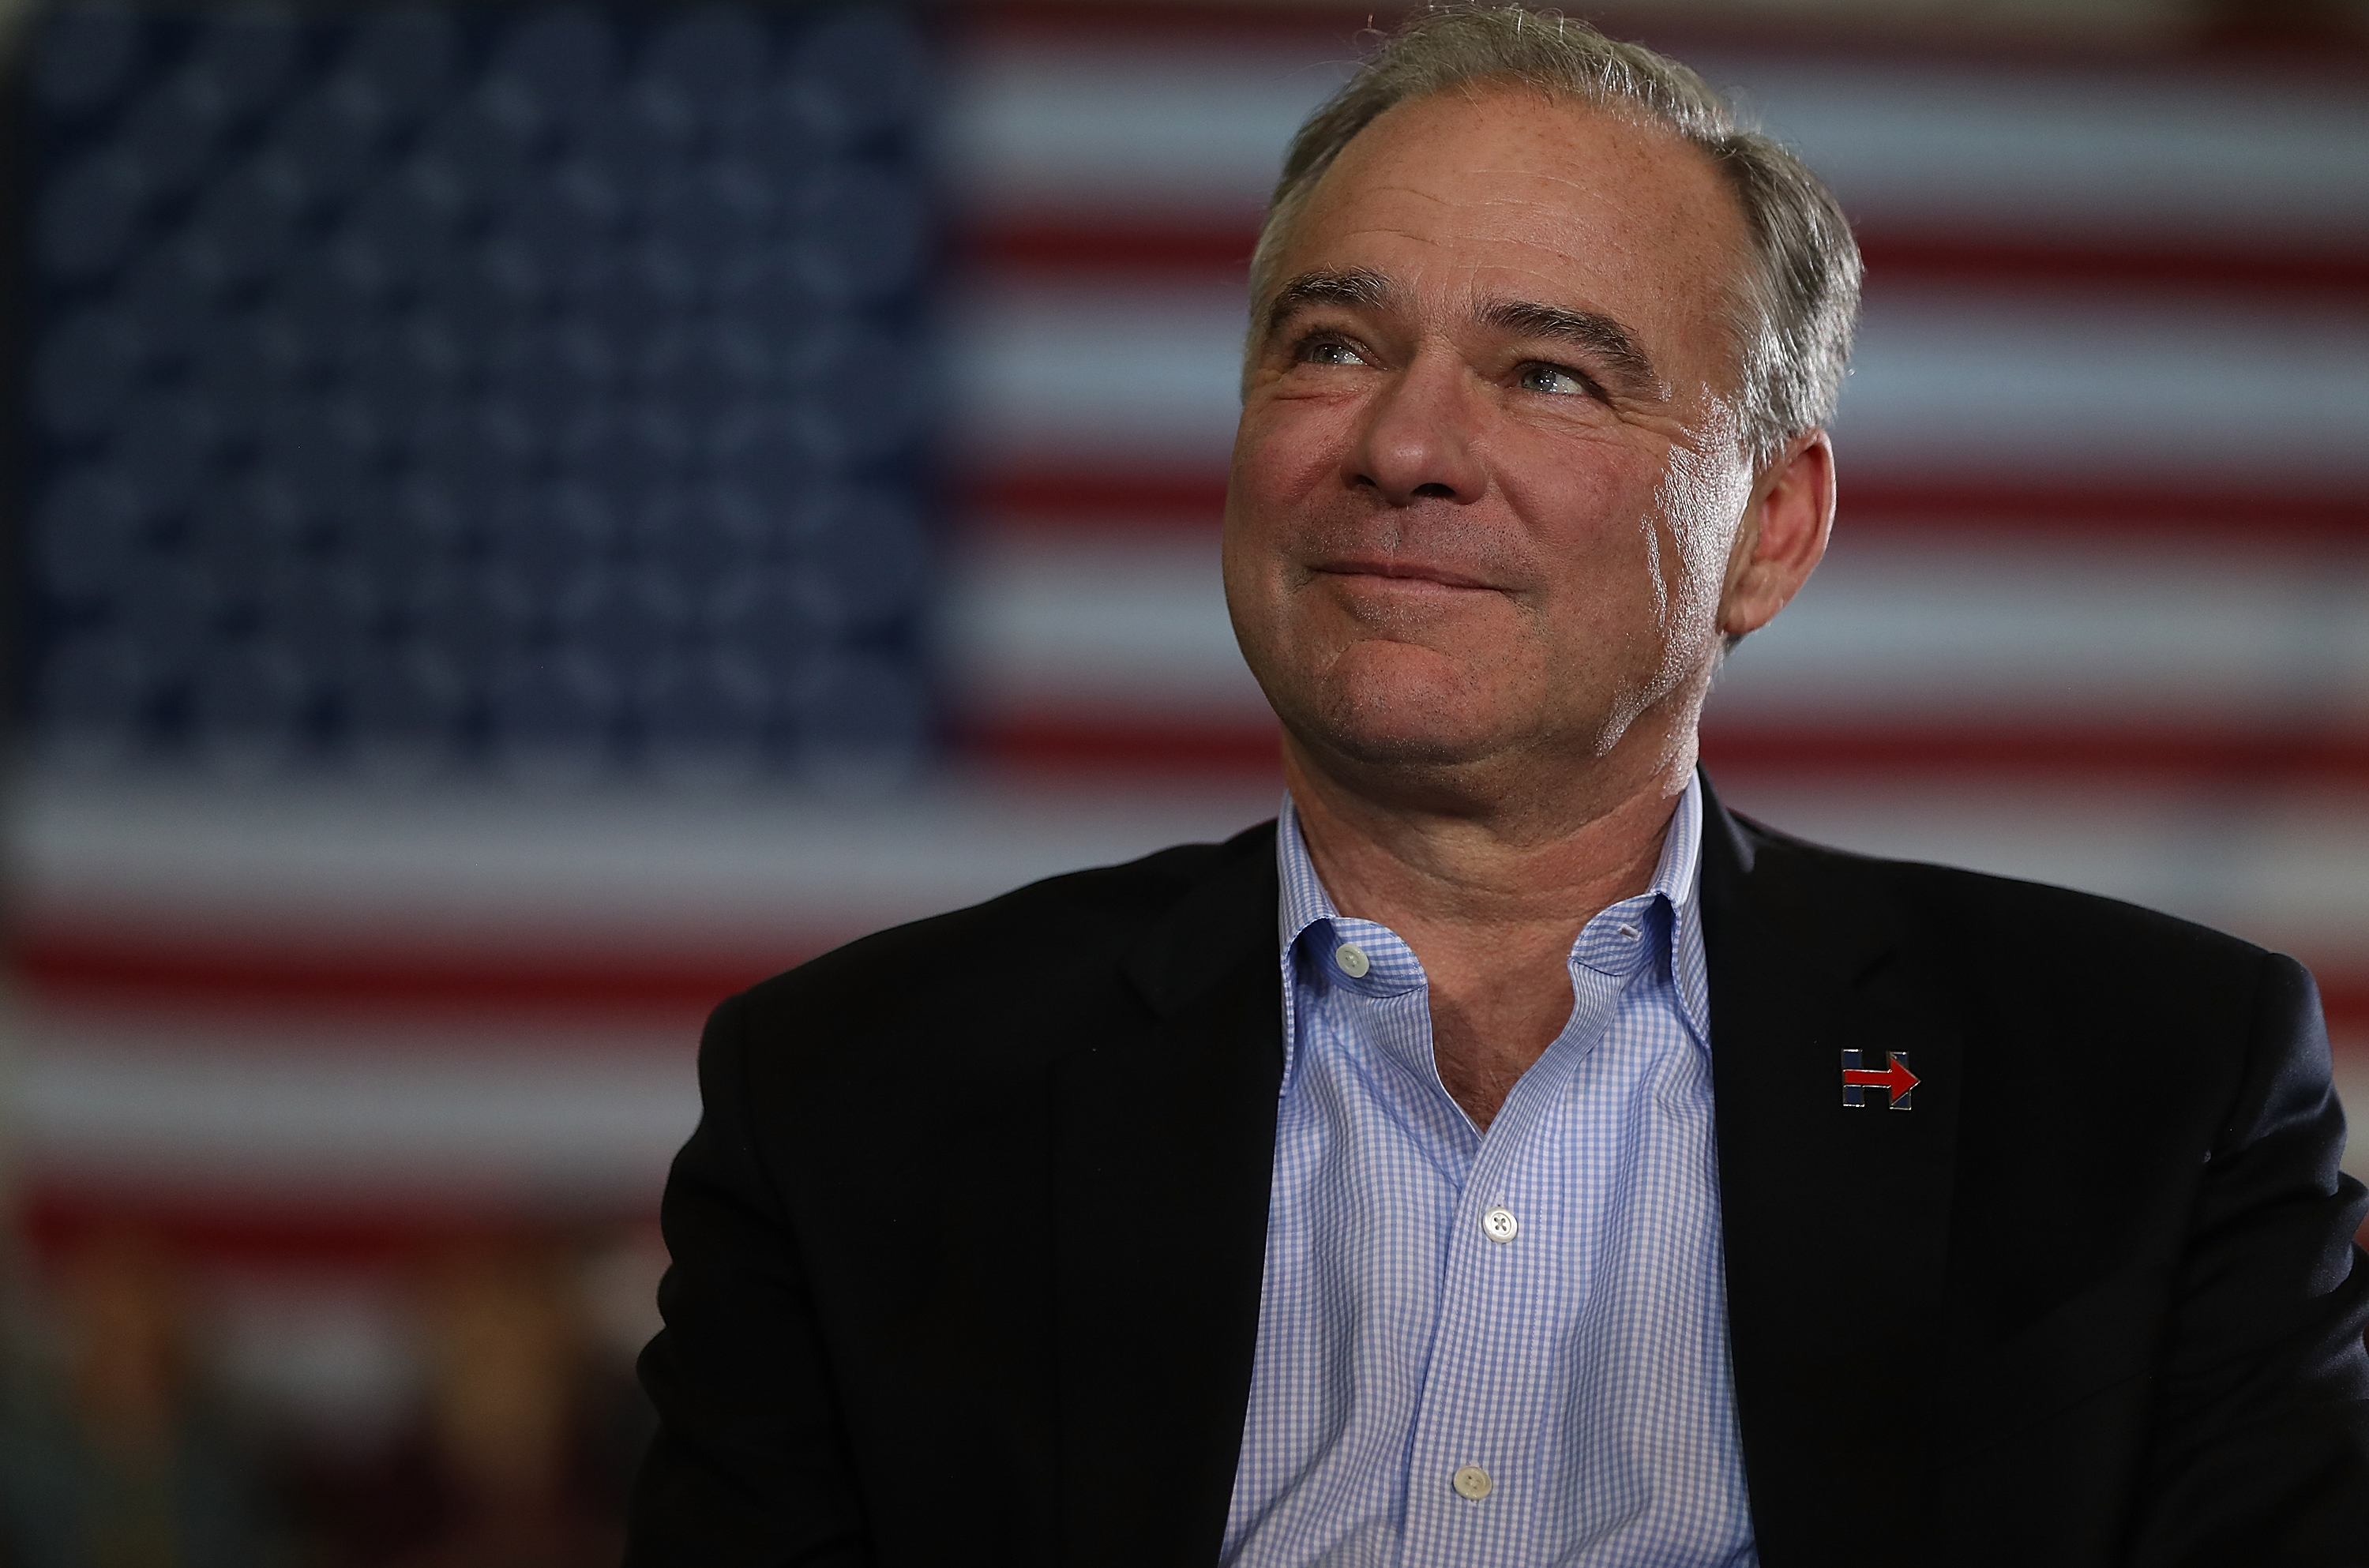 Hillary Clinton And Tim Kaine Campaign Together In Pennsylvania